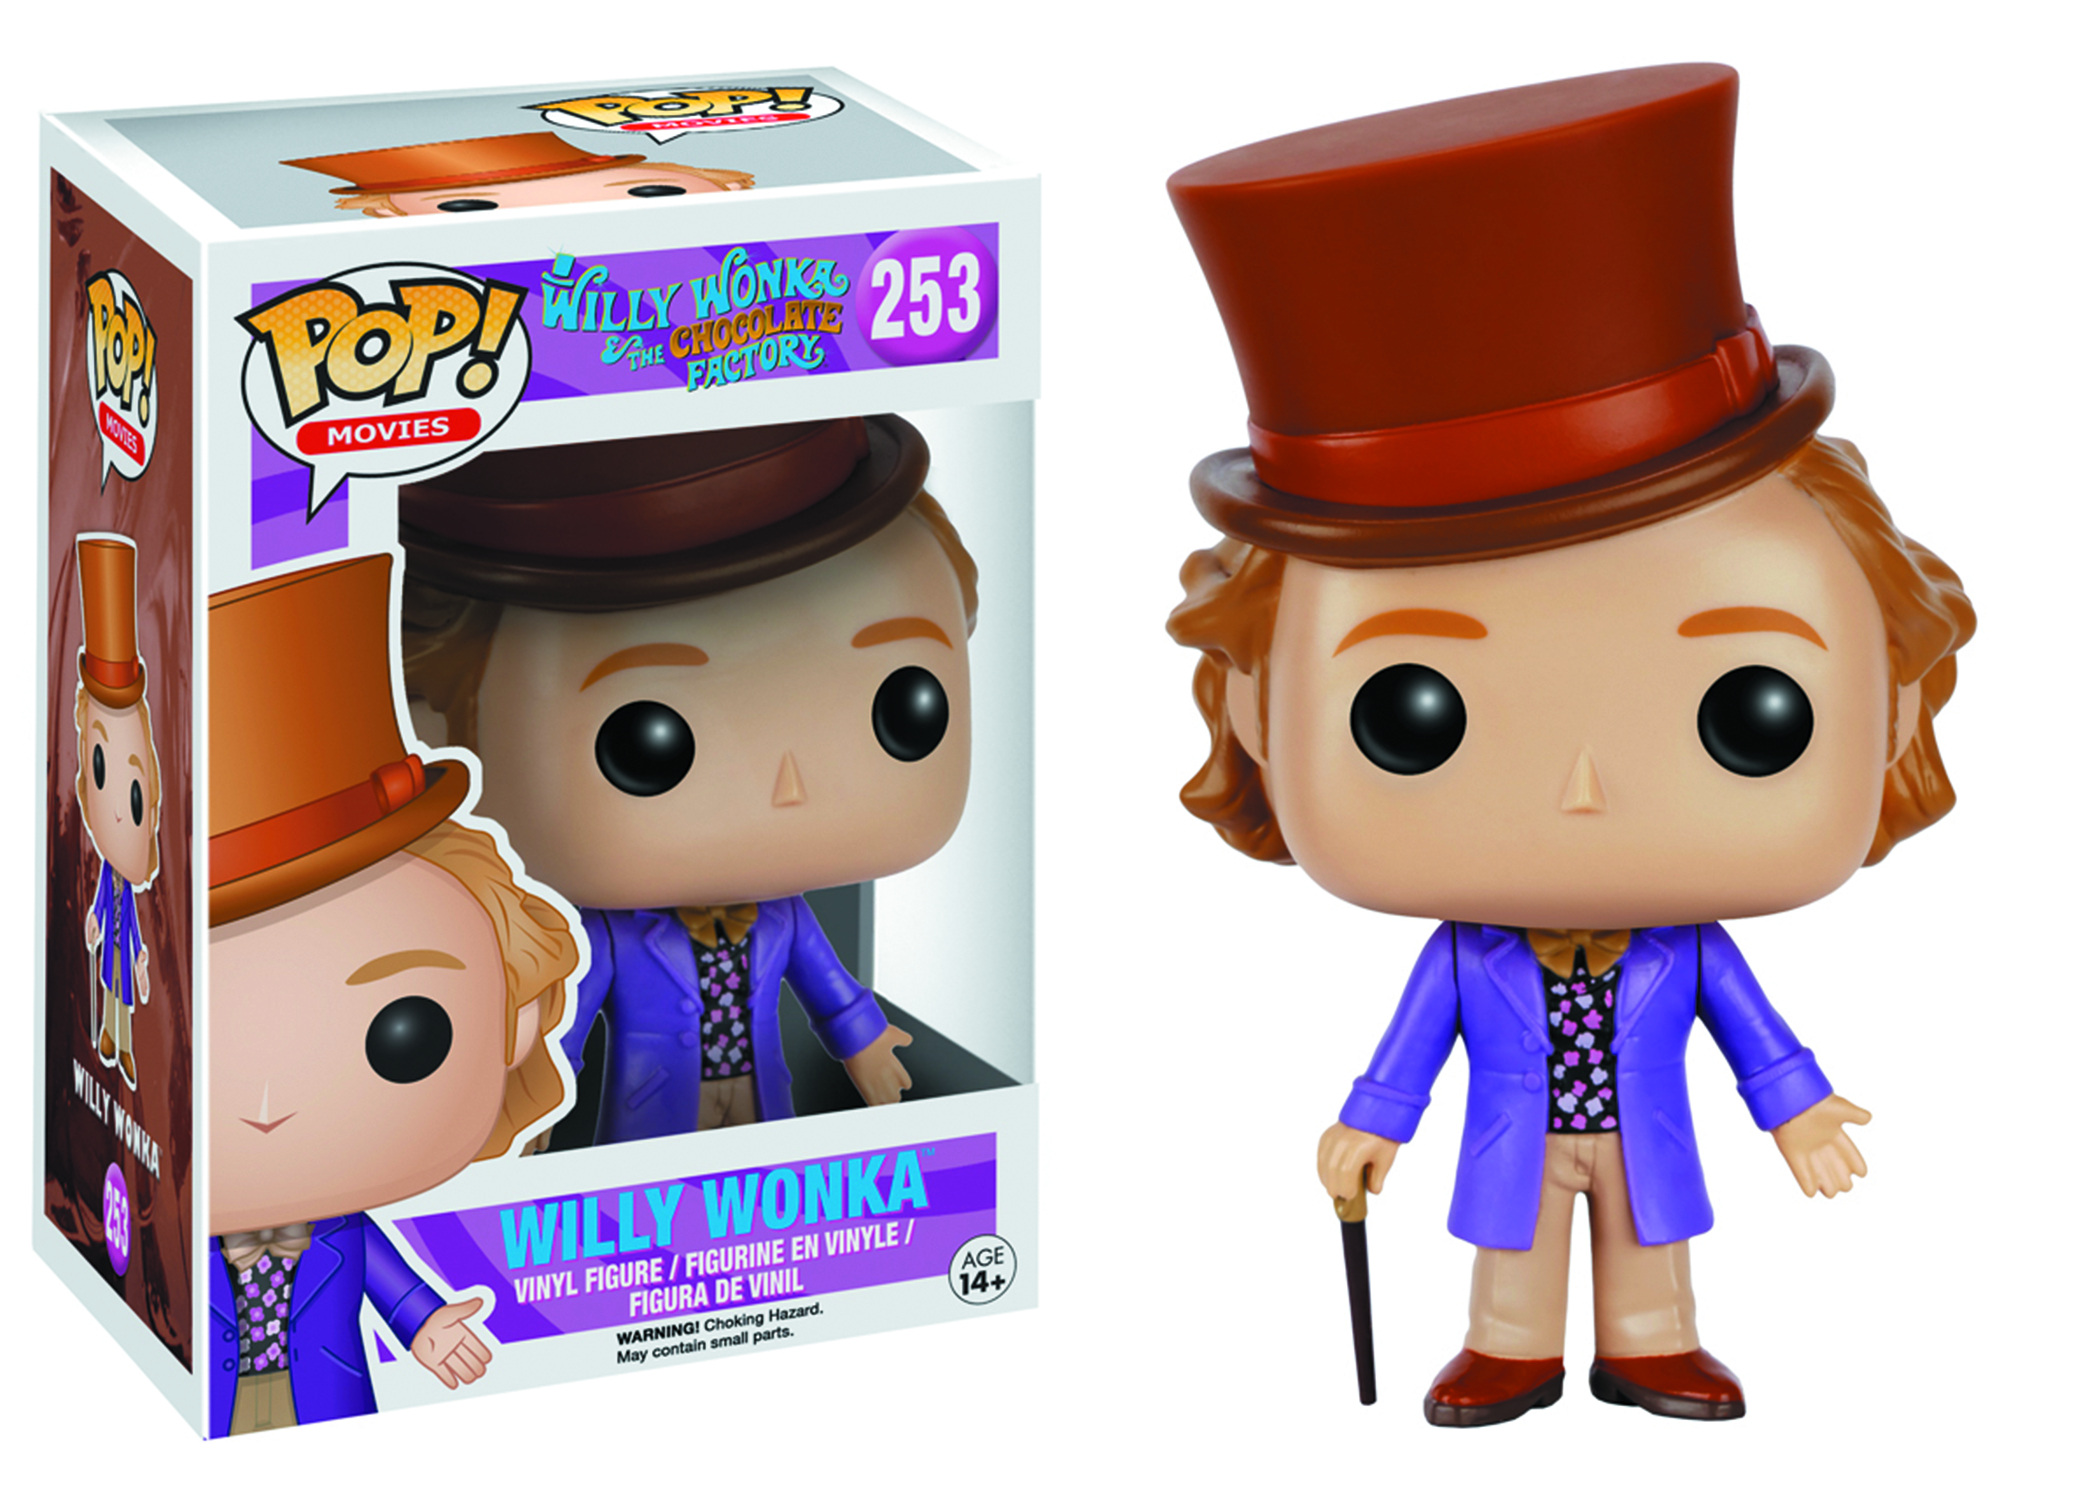 POP WILLY WONKA WILLY WONKA VINYL FIG